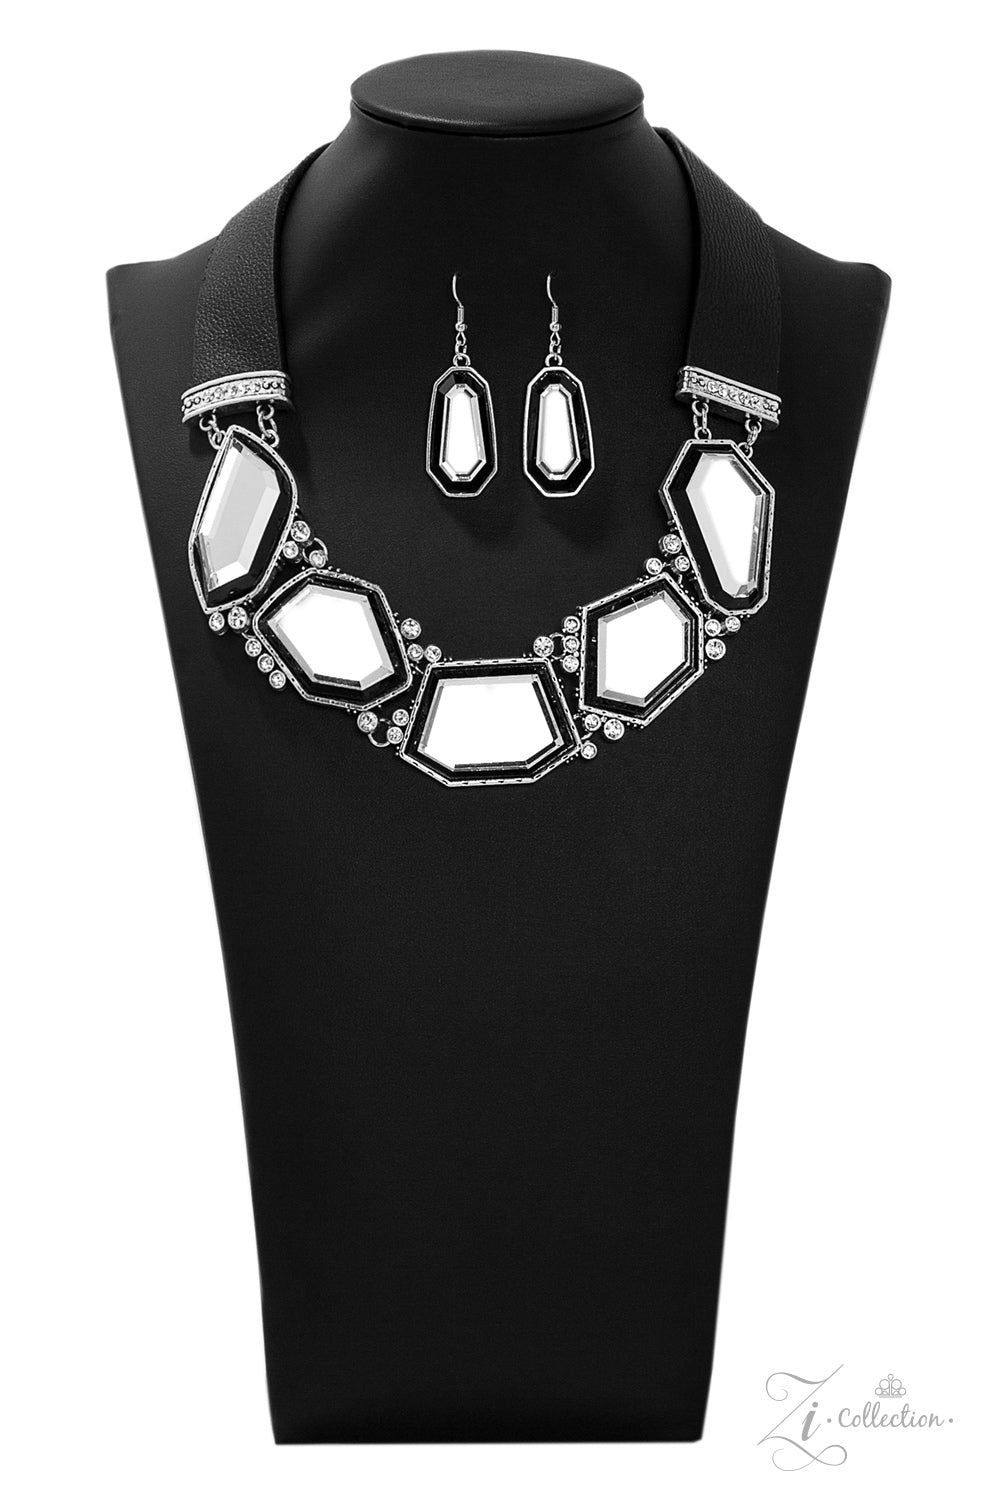 Rivalry - Black Leather Straps holding Mirror-Like Geometric Gems Necklace - 2019 Zi Collection